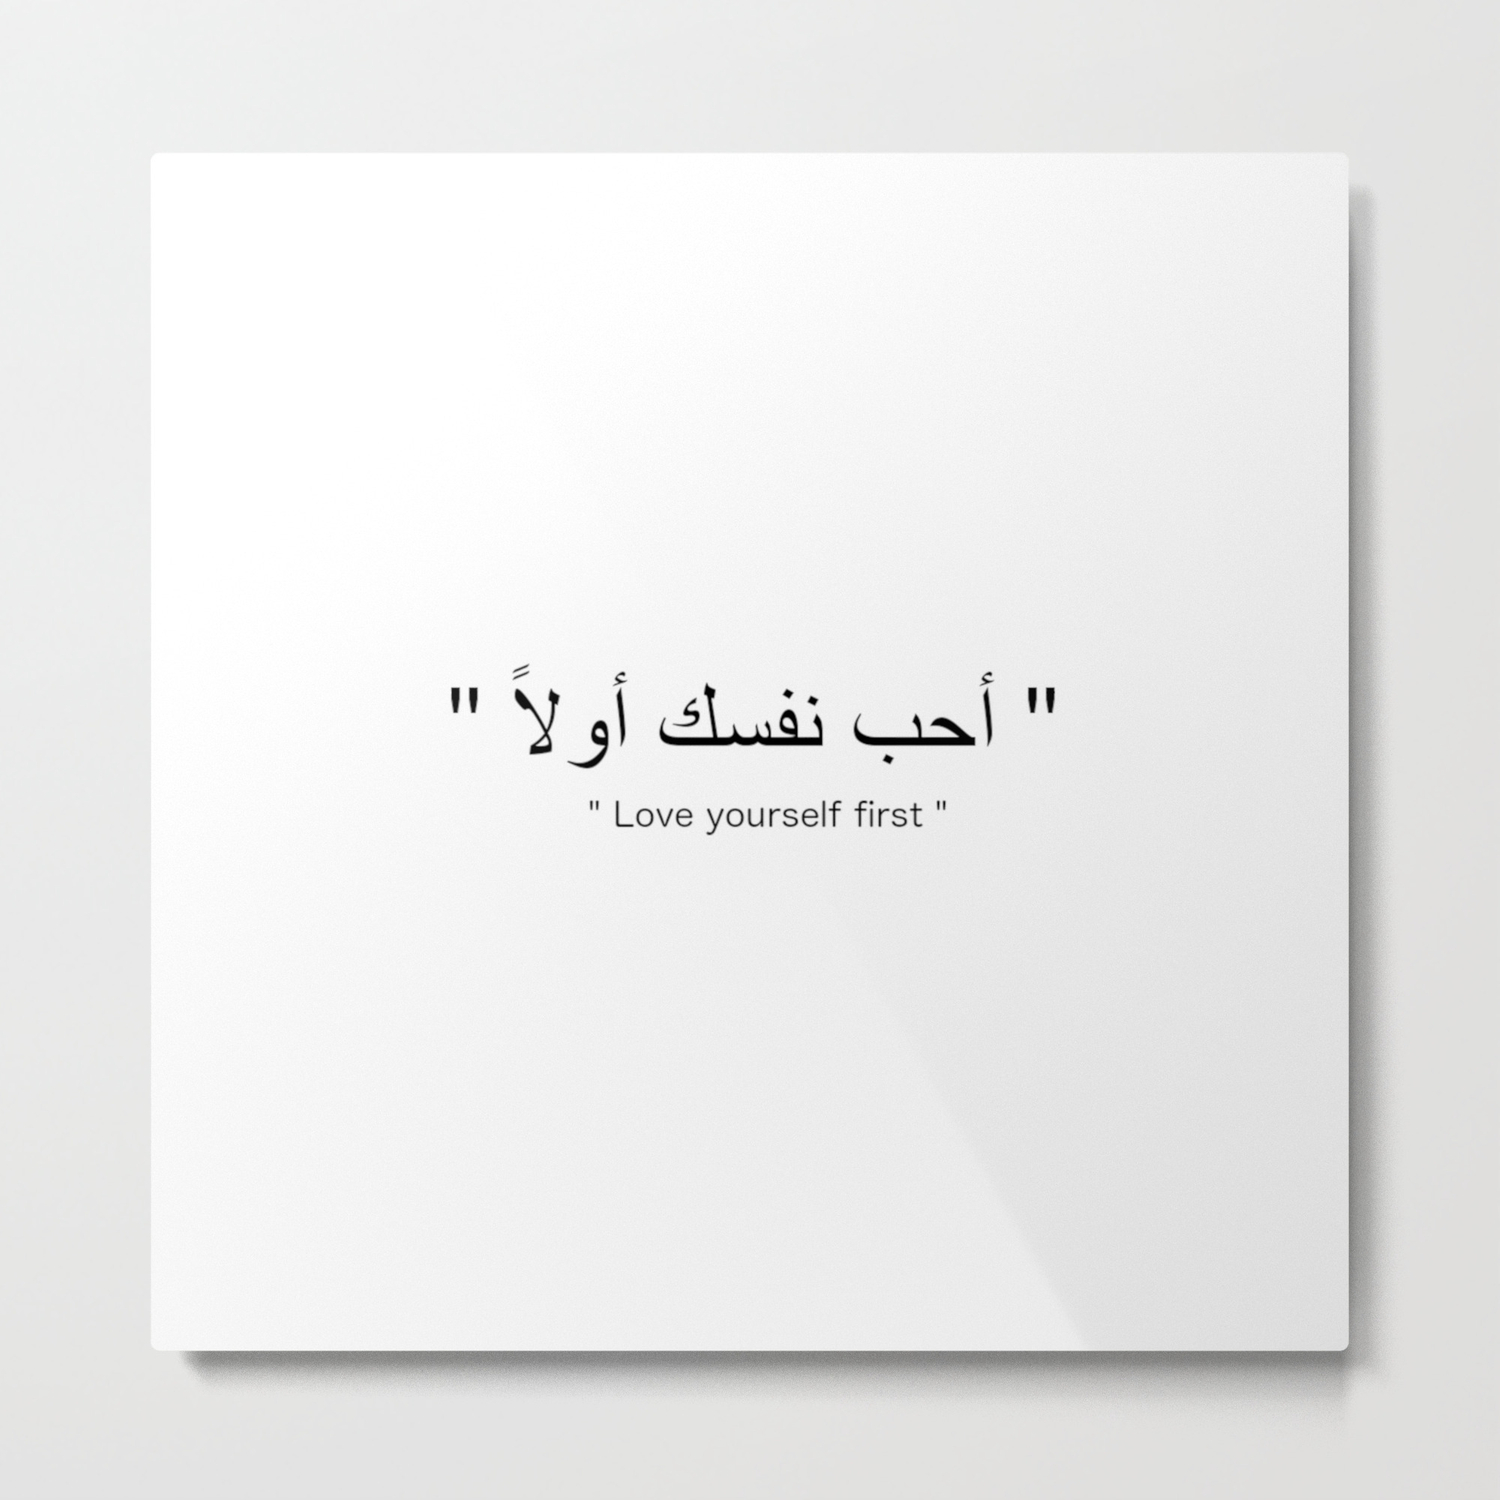 Love yourself first احب نفسك اولا arabic word new art love cute hot style  arab translated your self Metal Print by abllo | Society6